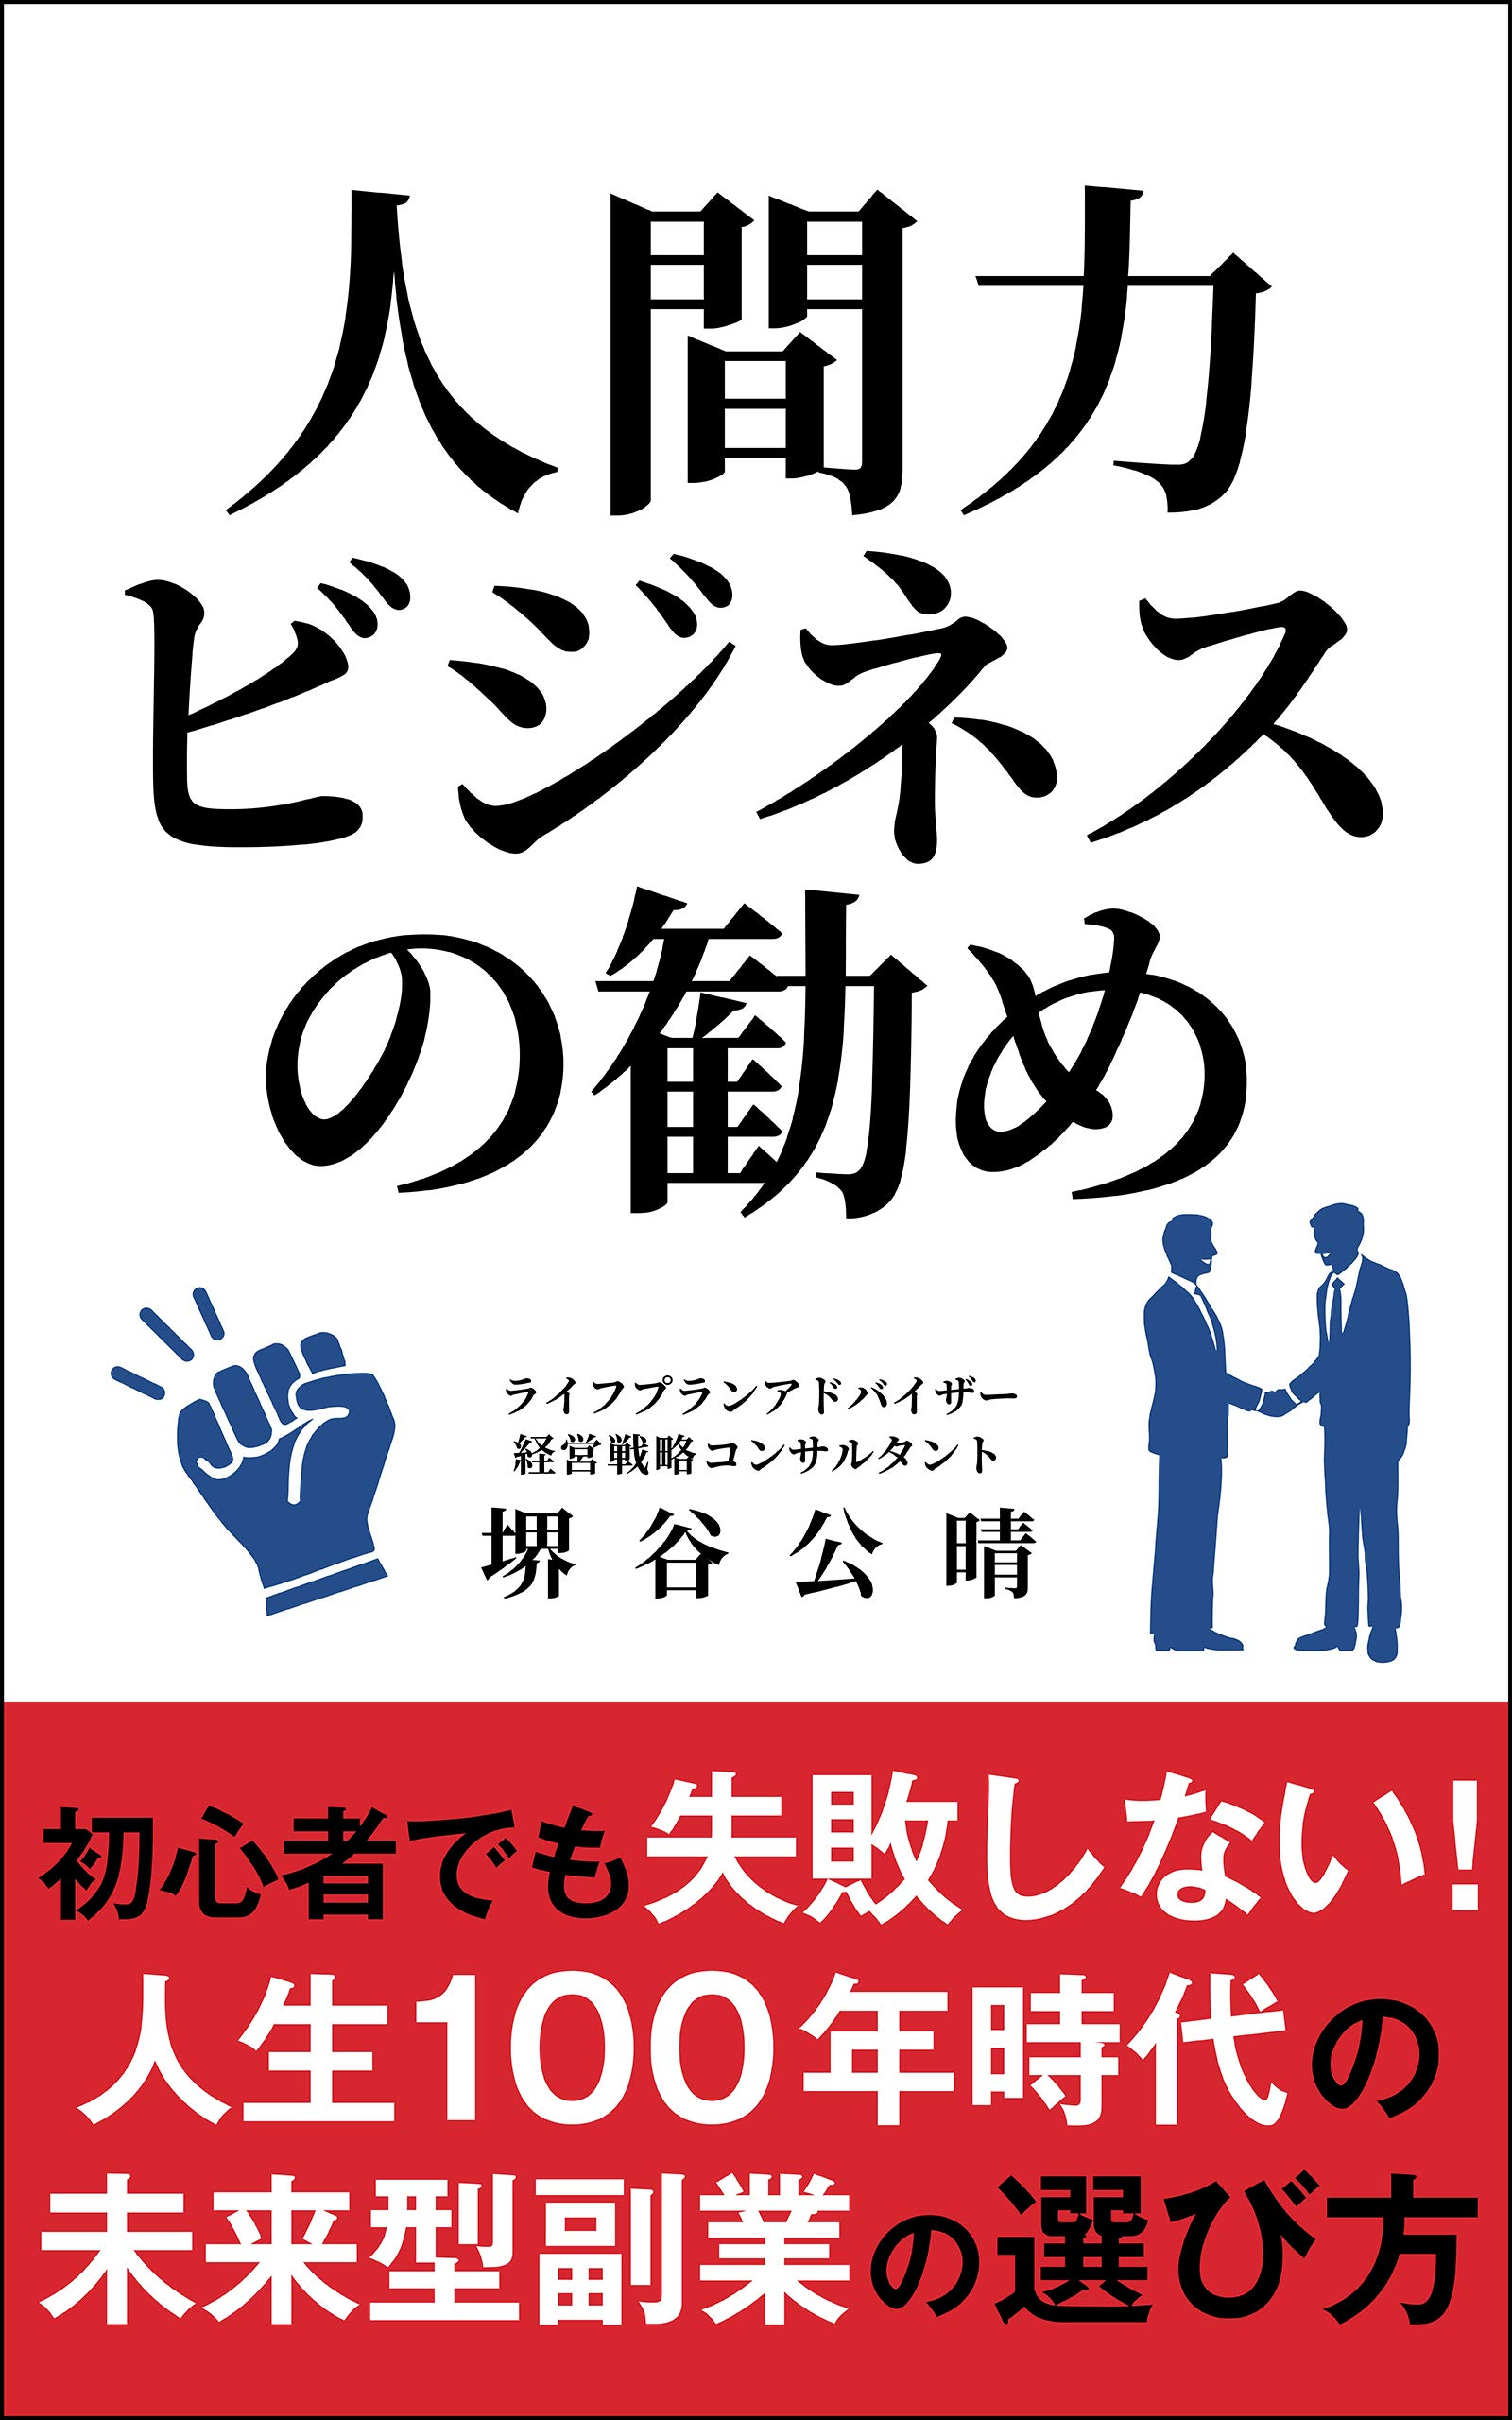 Human power business recommendations: It does not fail even for beginners How to choose a futuristic side business in the age of 100 years (Japanese Edition)